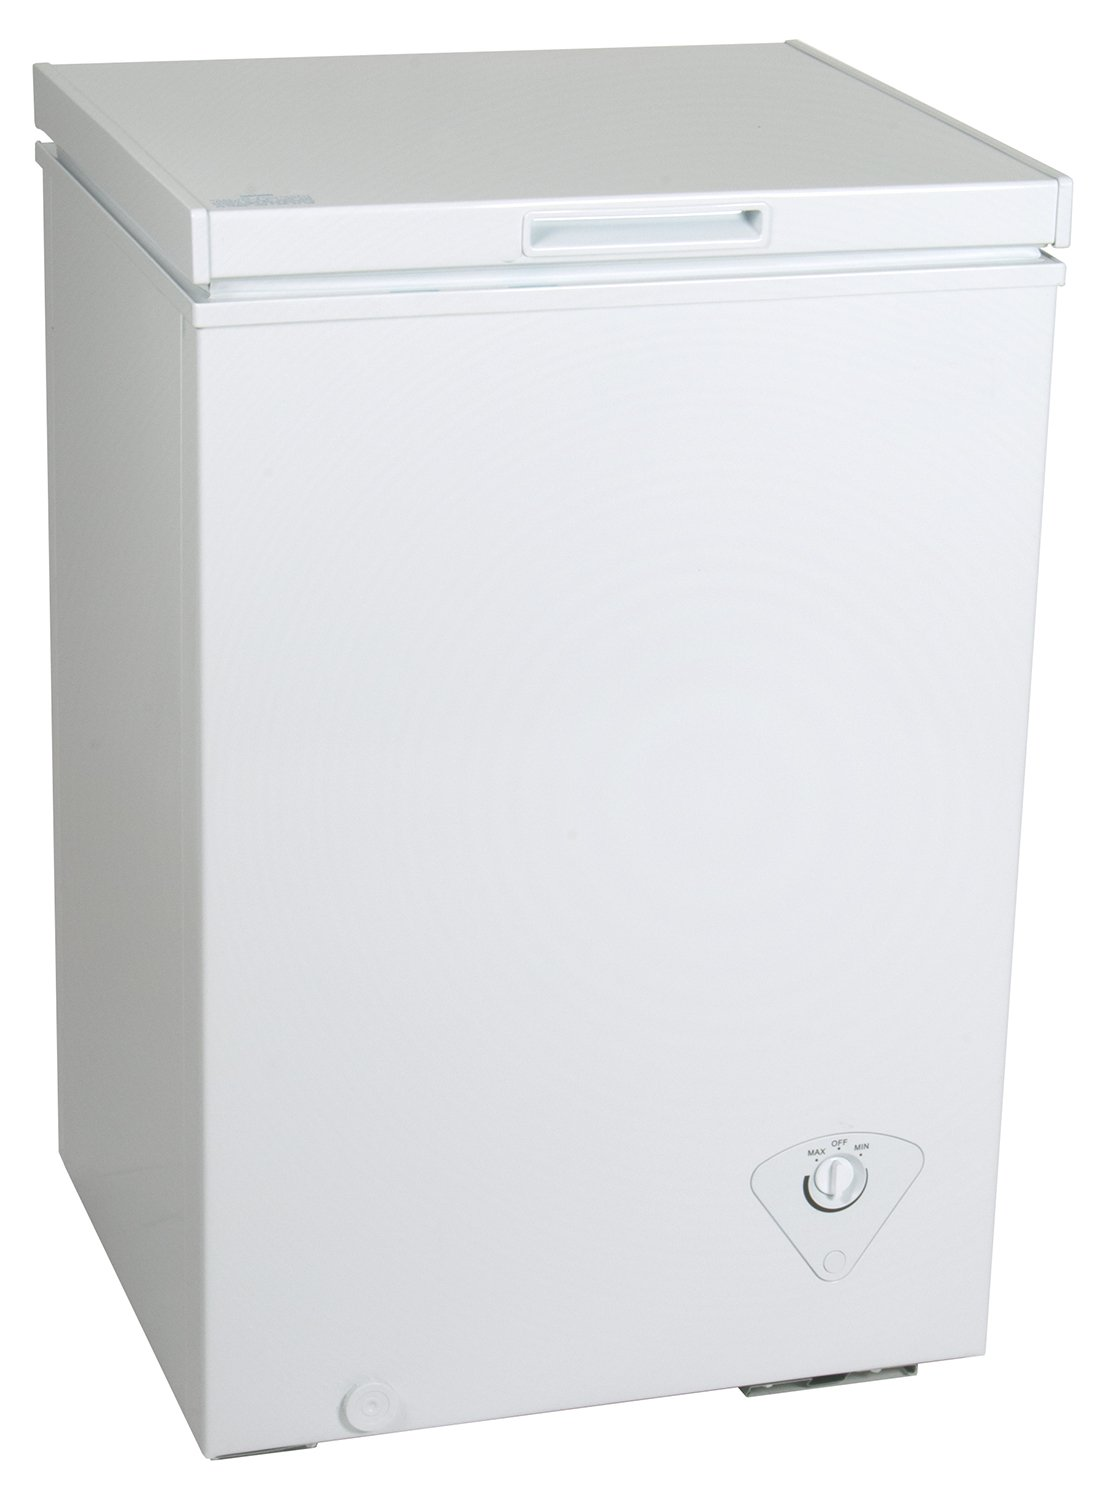 Koolatron Chest Freezer